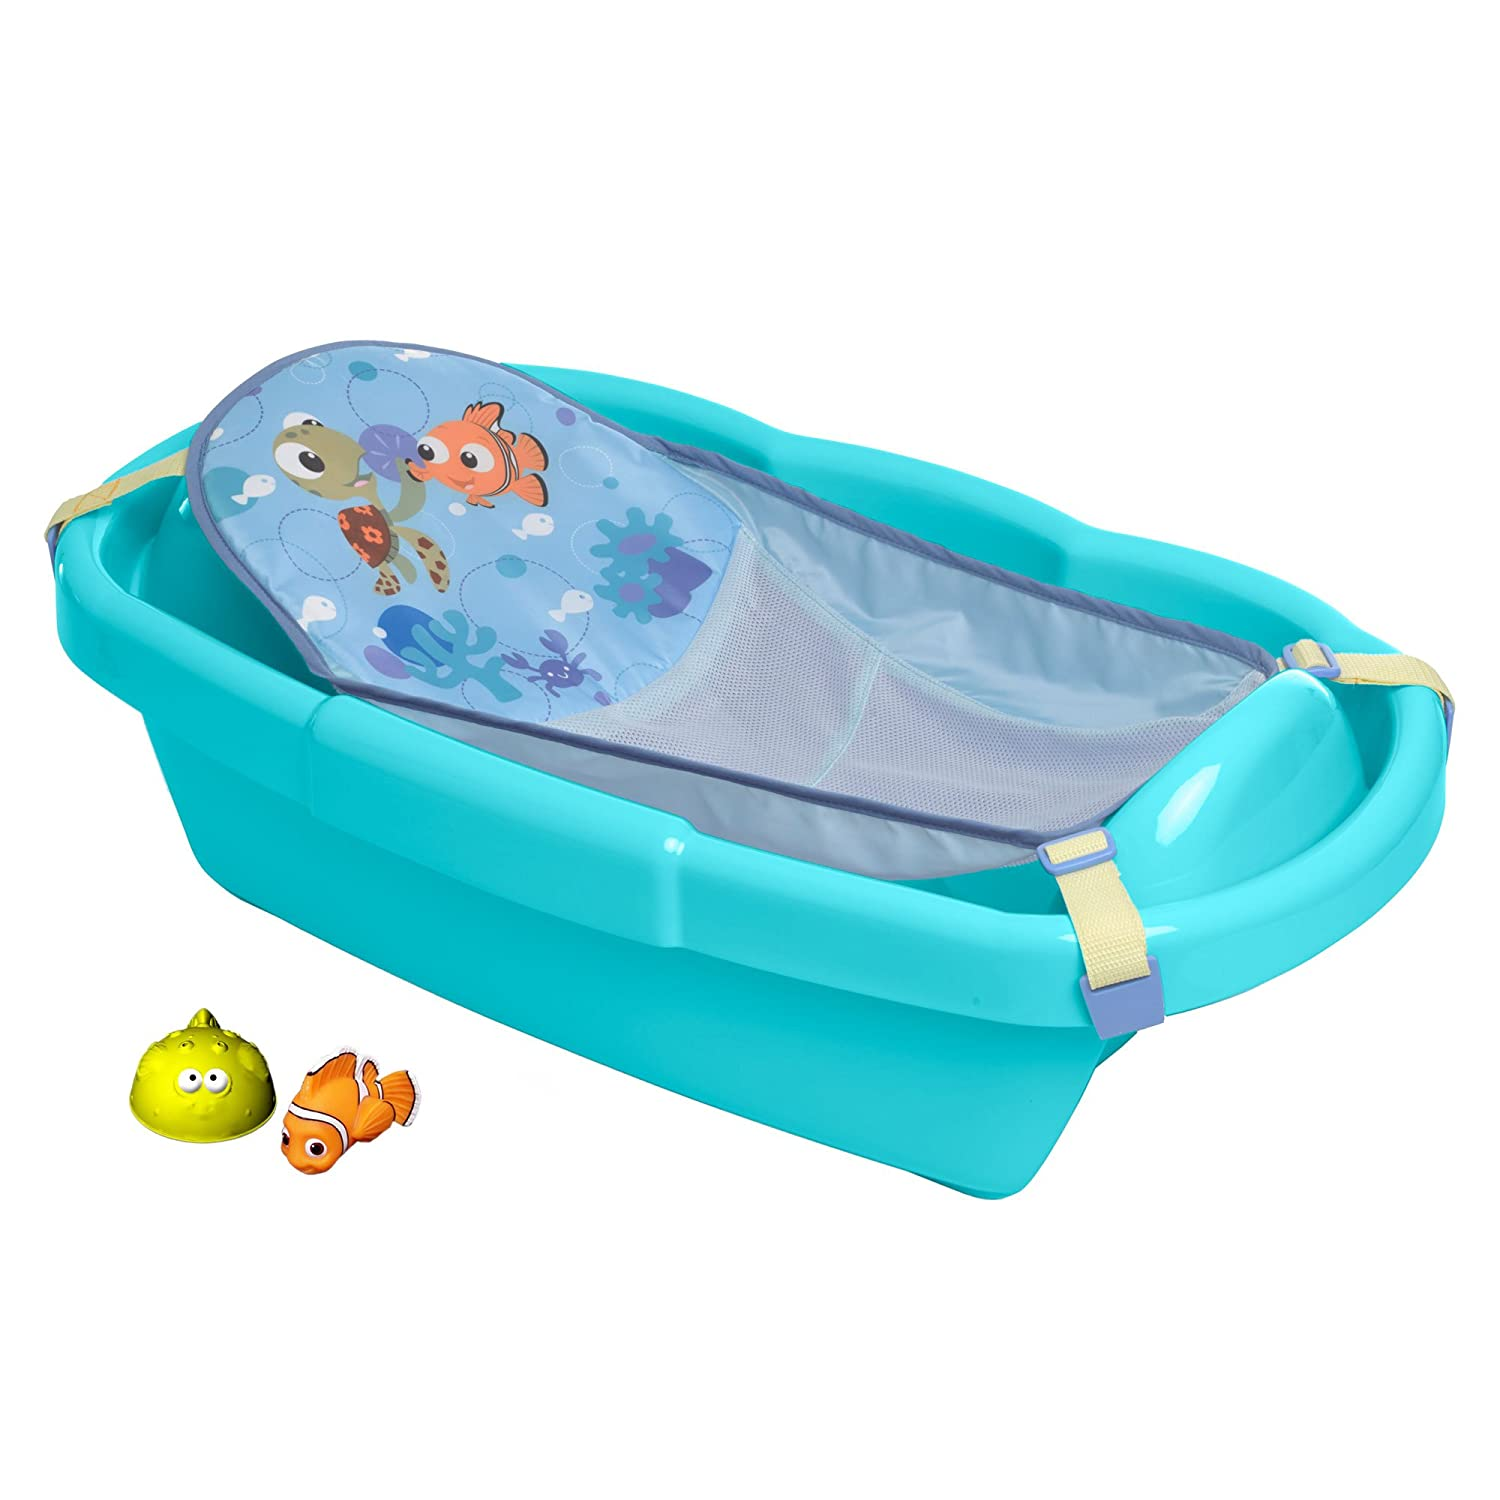 Amazon.com : The First Years Disney Nemo Infant To Toddler Tub : Baby